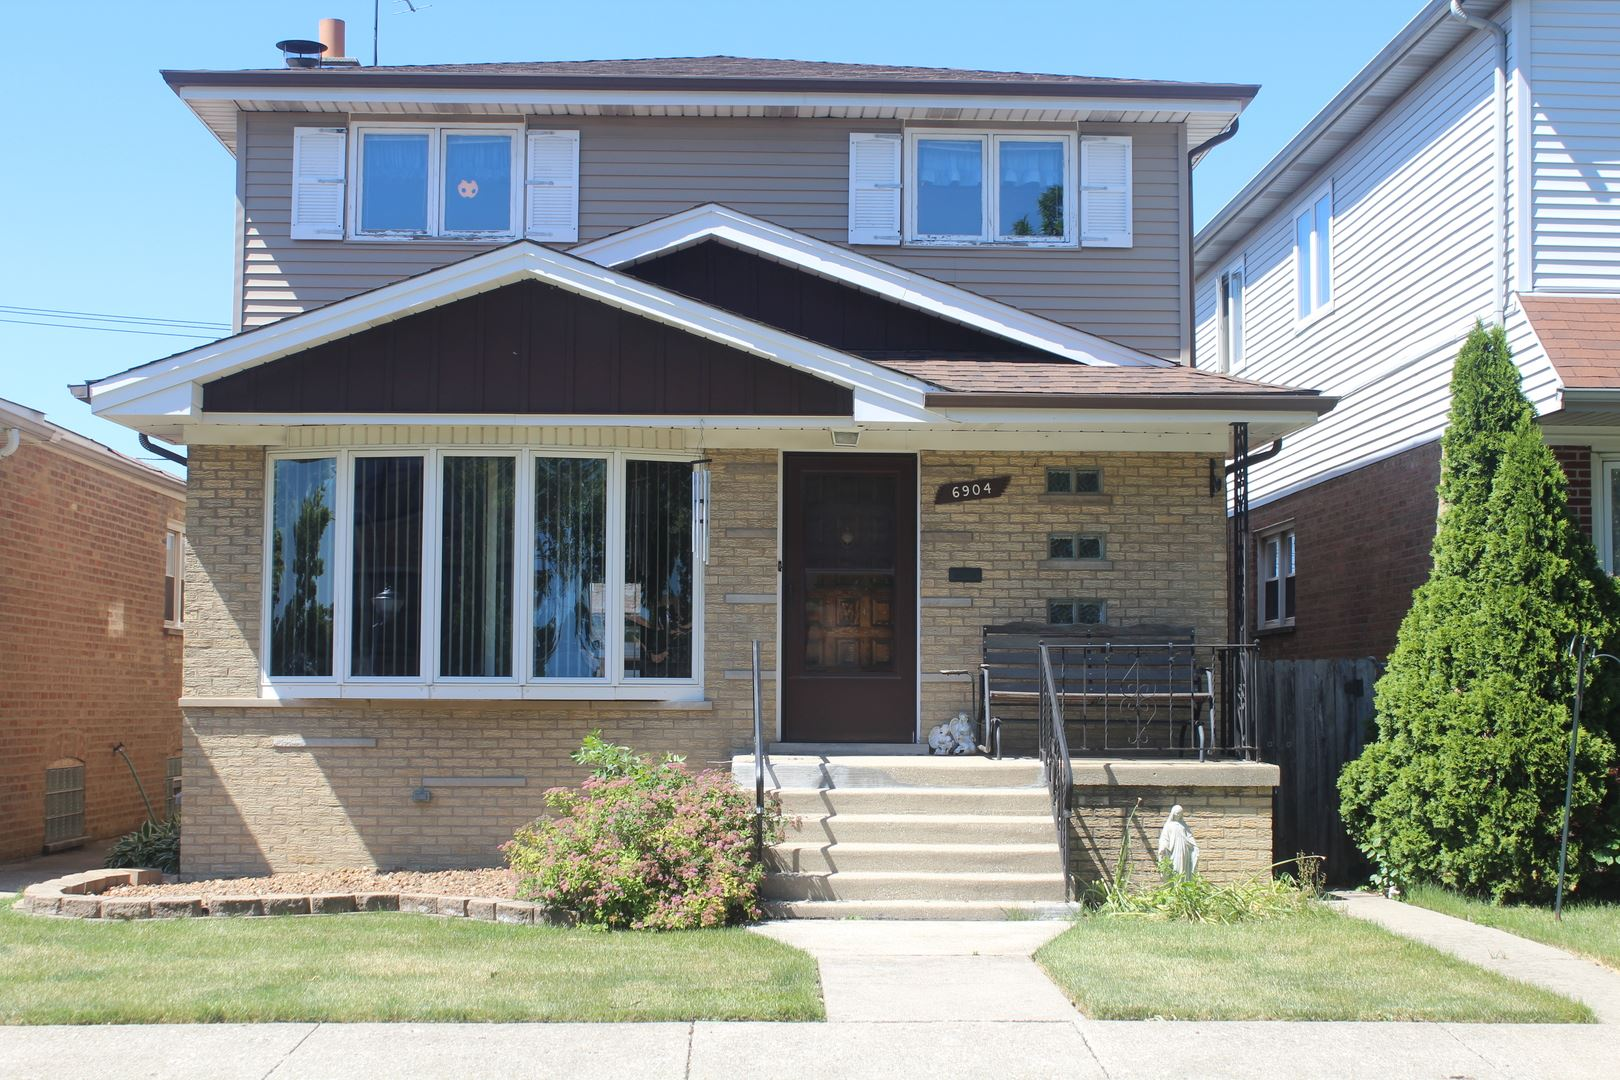 6904 W 63rd Place, Chicago, IL 60638 - #: 10752474